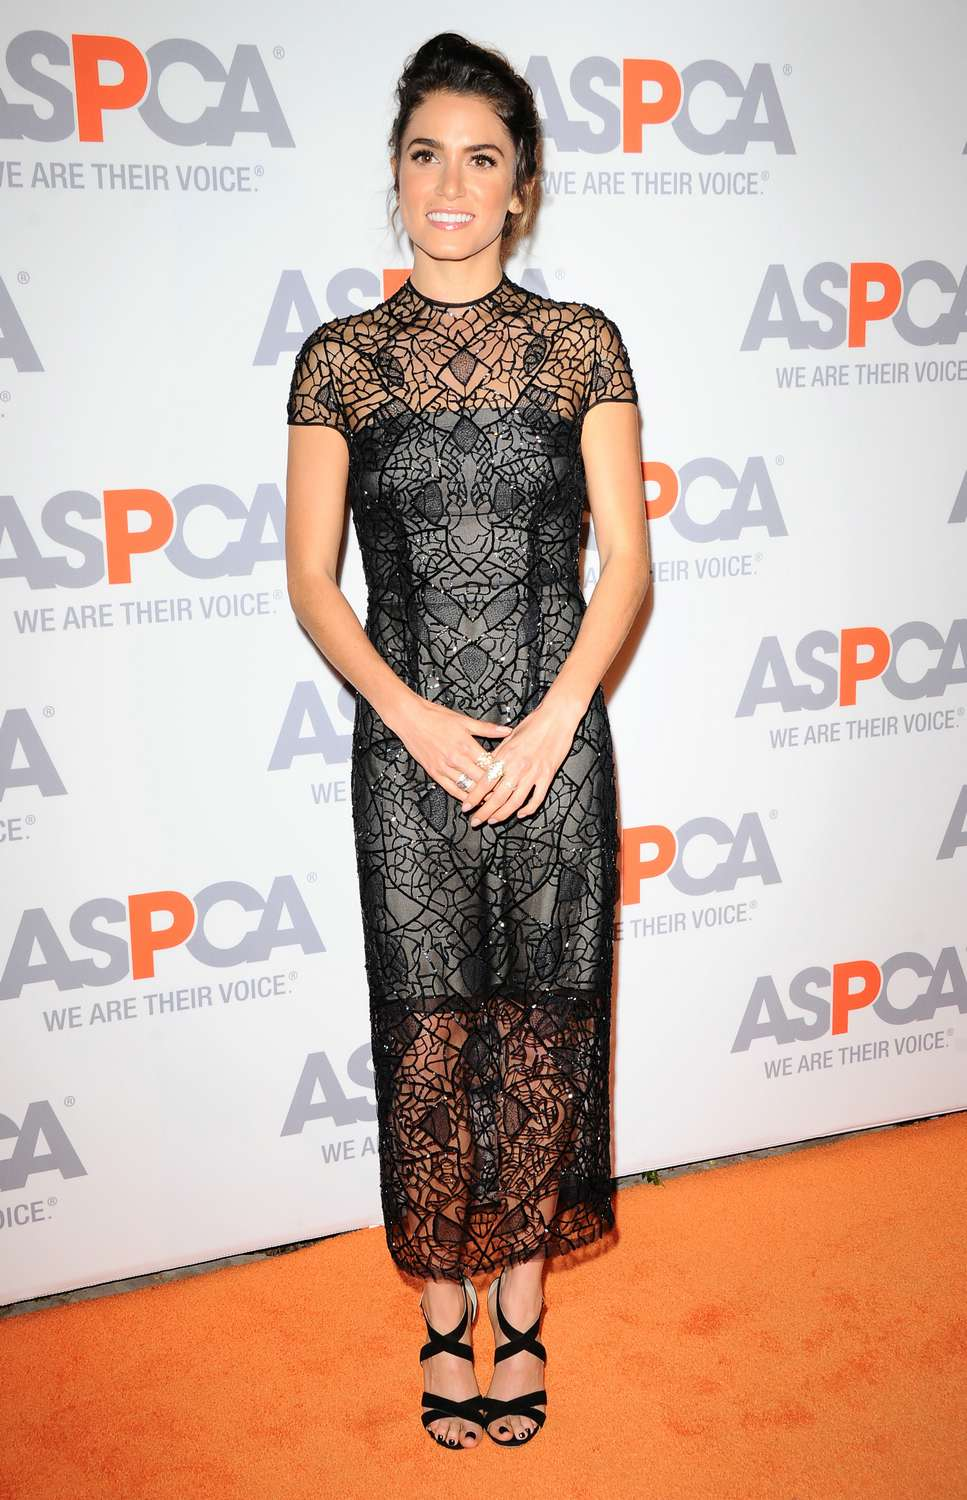 /nikki-reed-monique-lhuillier-aspca-compassion-awards/